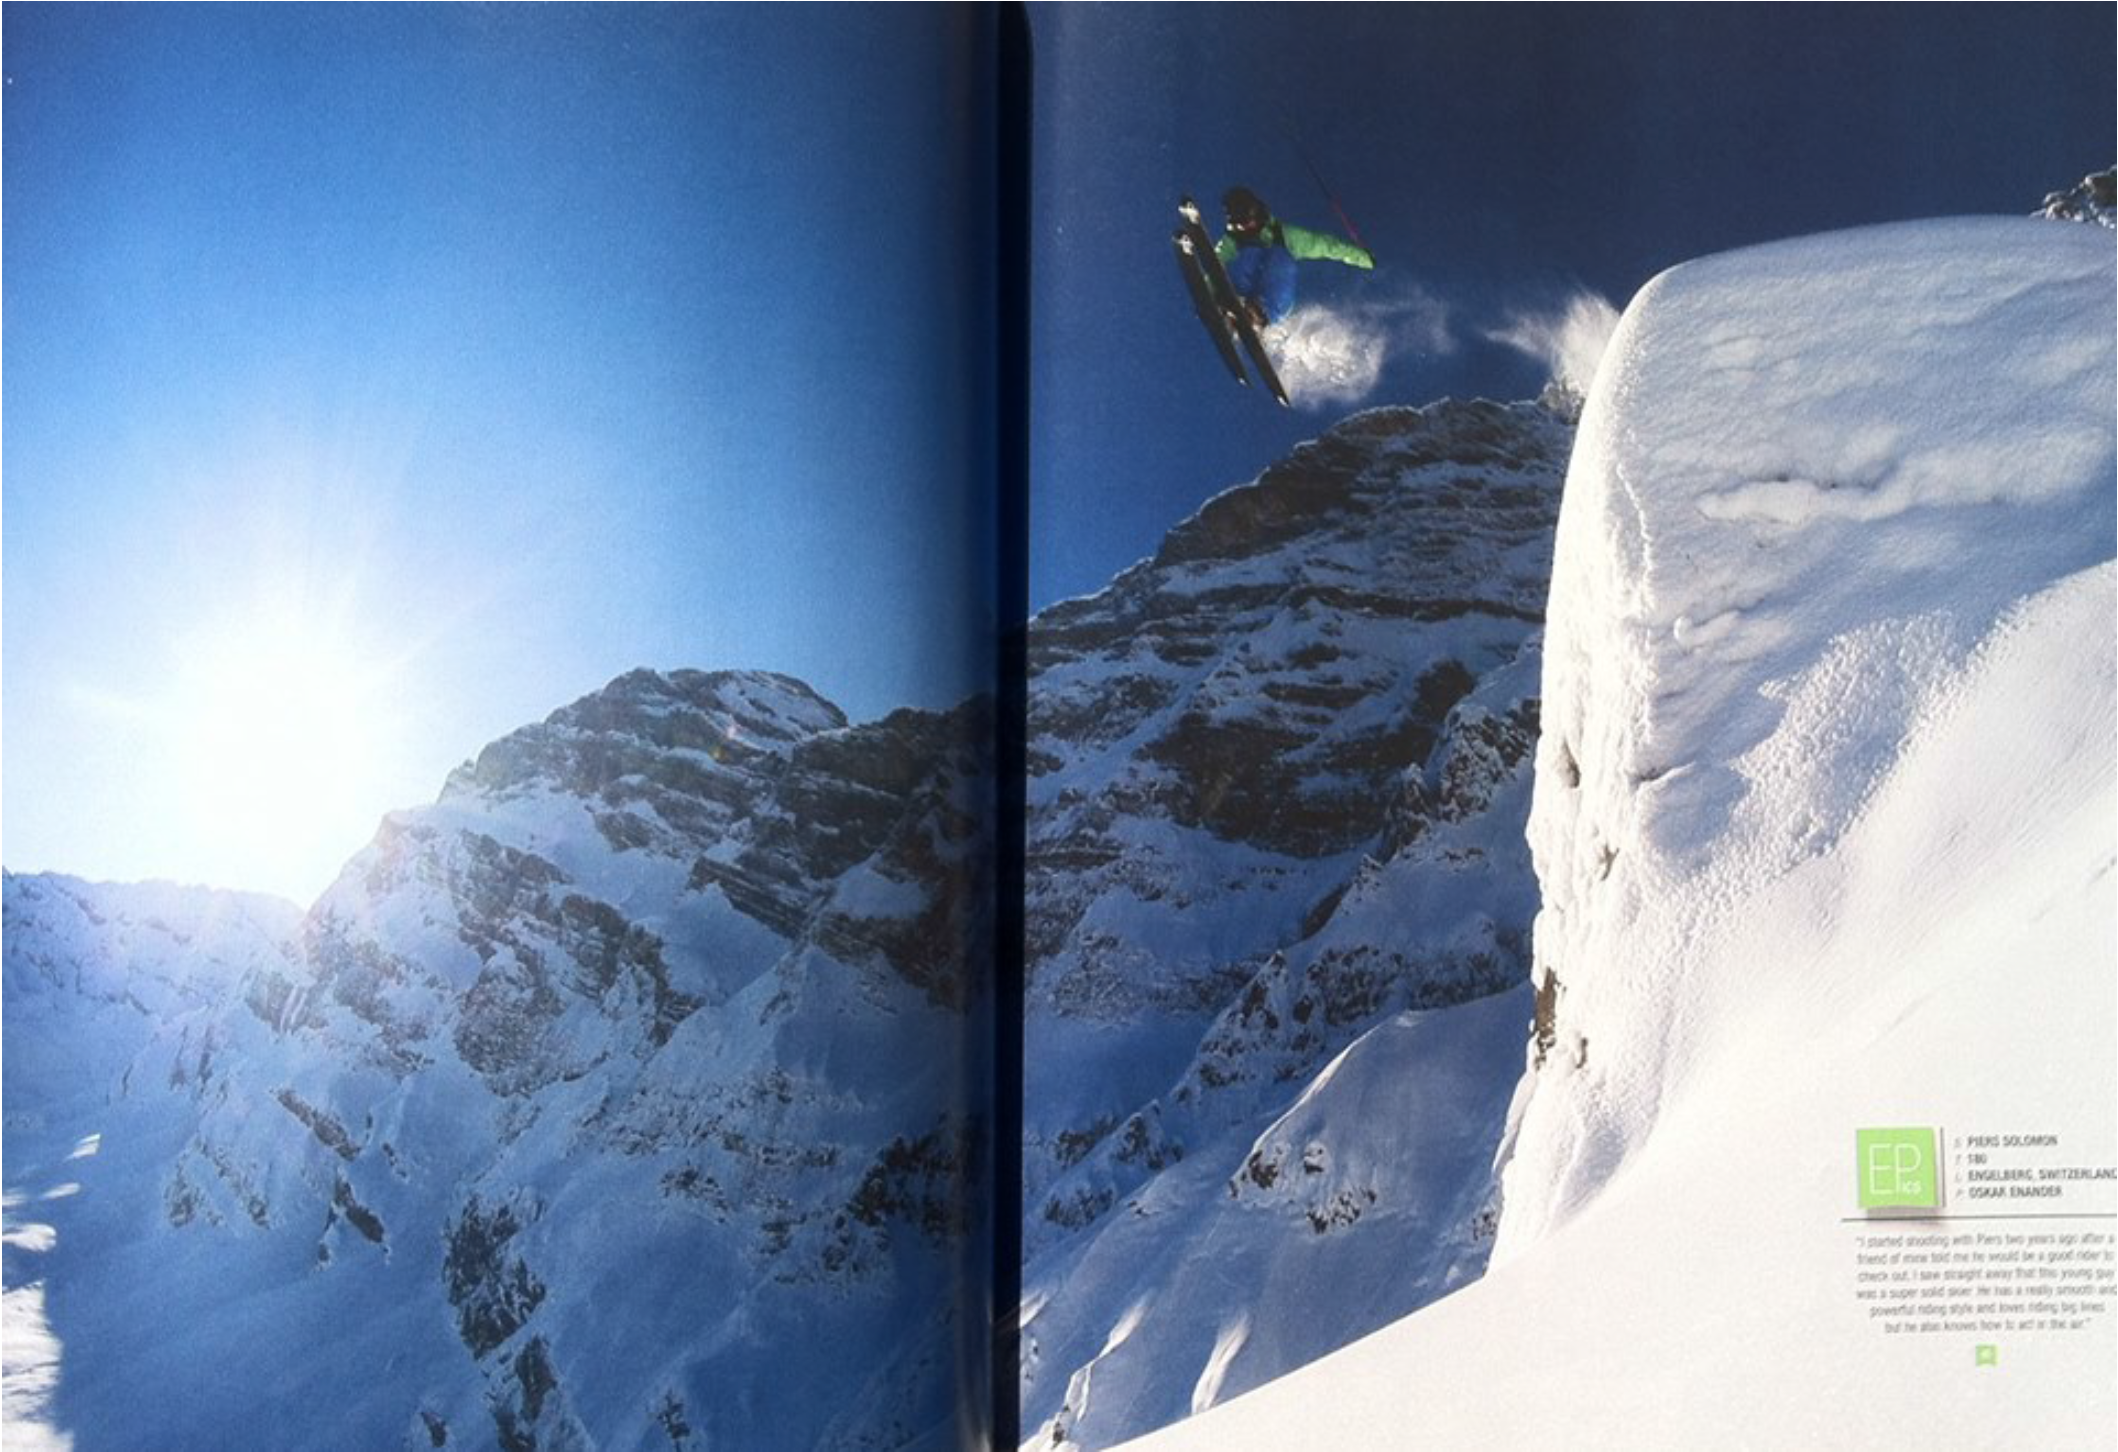 """Freeskier"" Magazine"